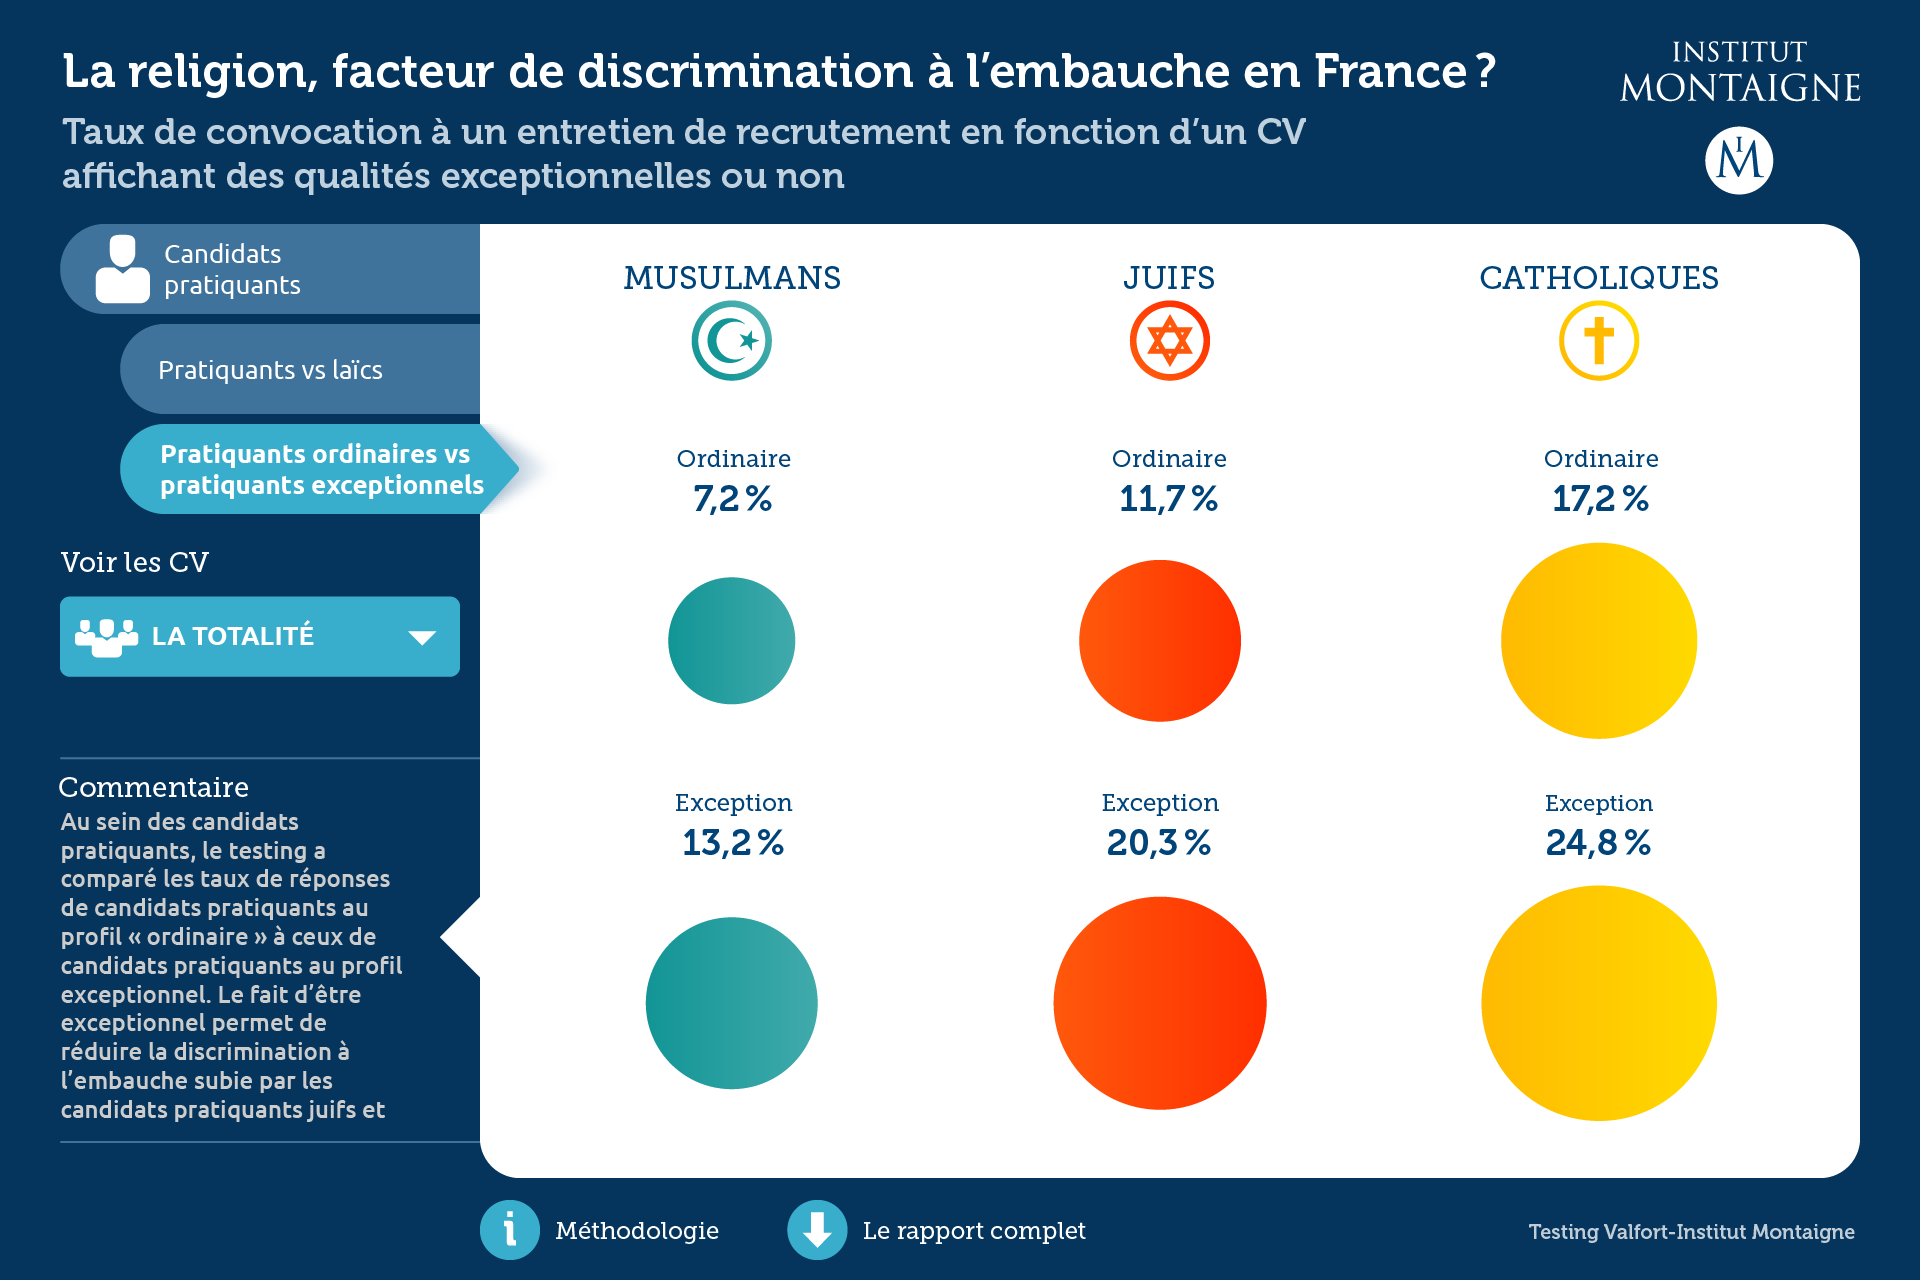 Institut Montaigne : La religion en France, facteur de discrimination à l'embauche en France ? - module interactif